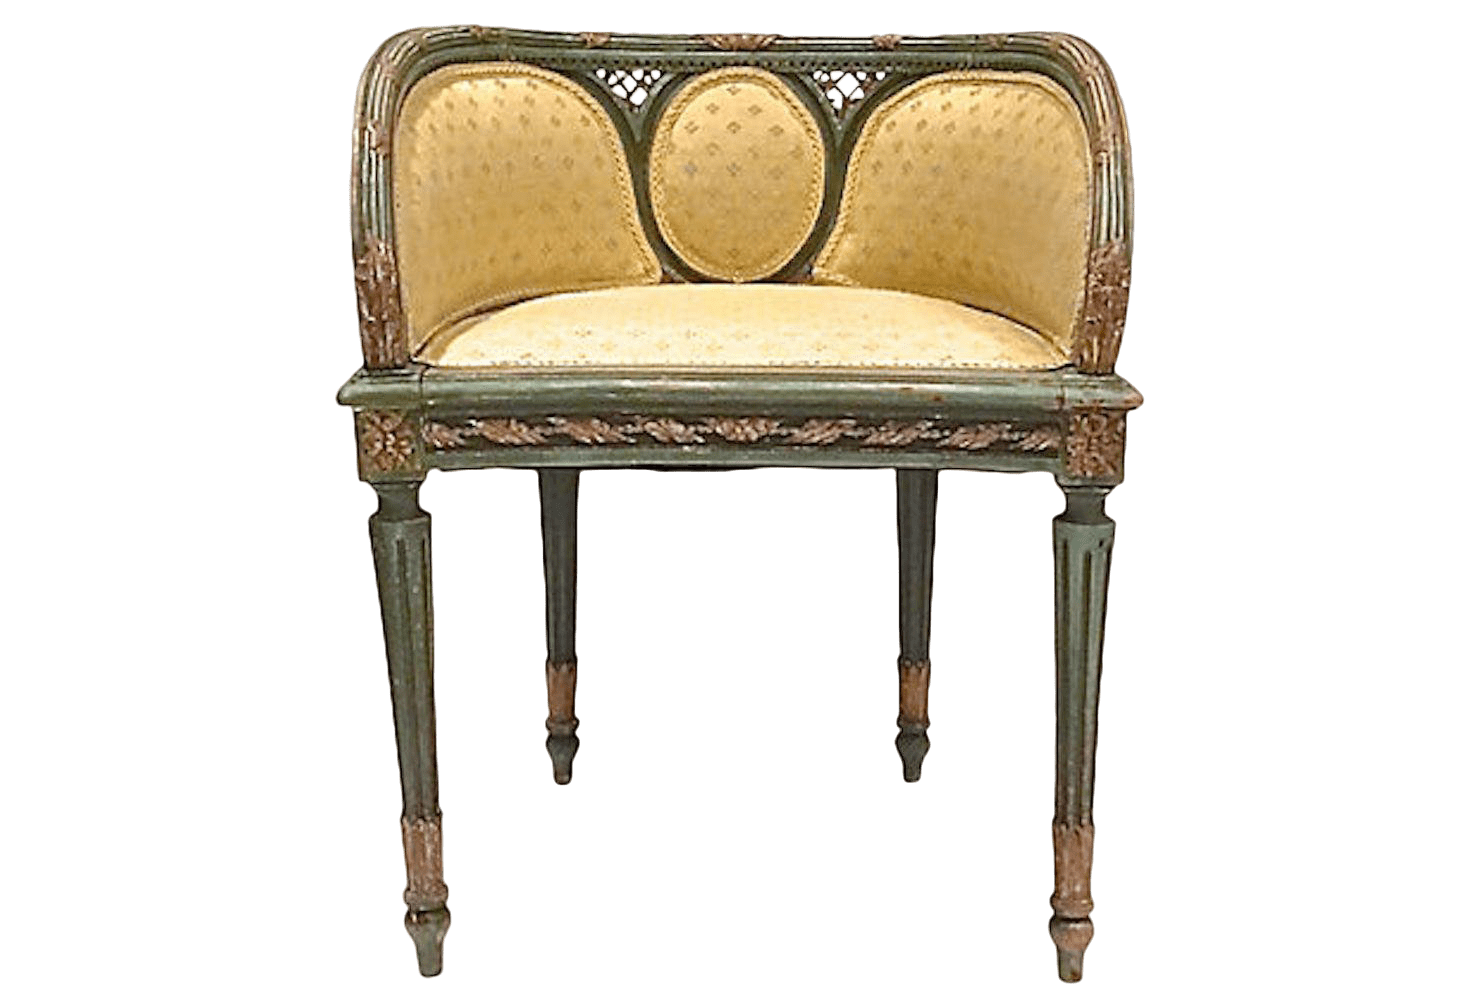 antique vanity chair plastic see through vintage used benches for sale chairish 19th century bench